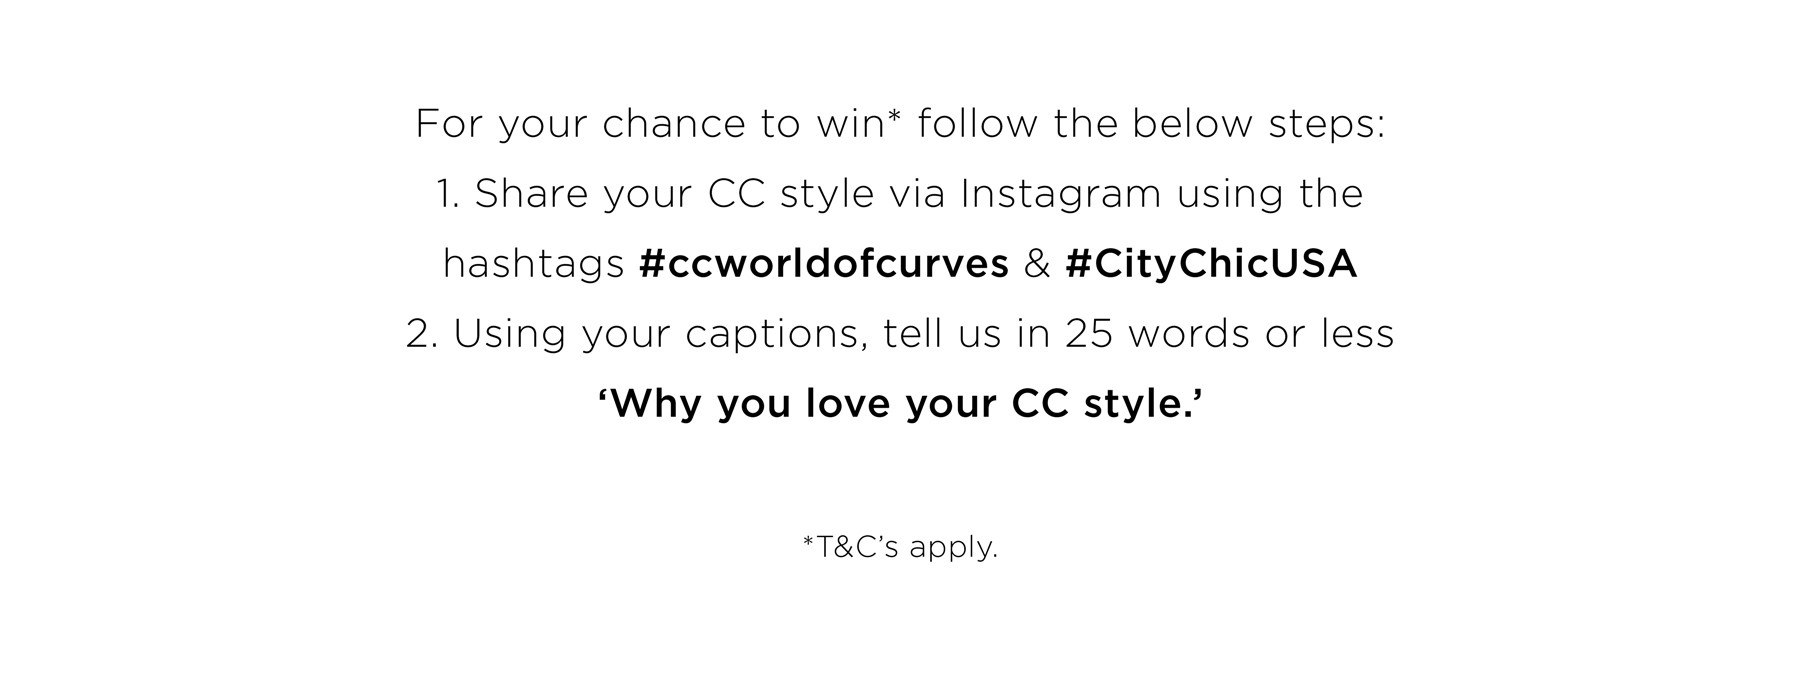 For your chance to win* follow the steps: 1. Share your CC style via Instagram using the hashtags #ccworldofcurves & #CityChicUSA  2. Using your captions, tell us in 25 words or less ″Why you love your CC style″ *T&C apply, See website for full details